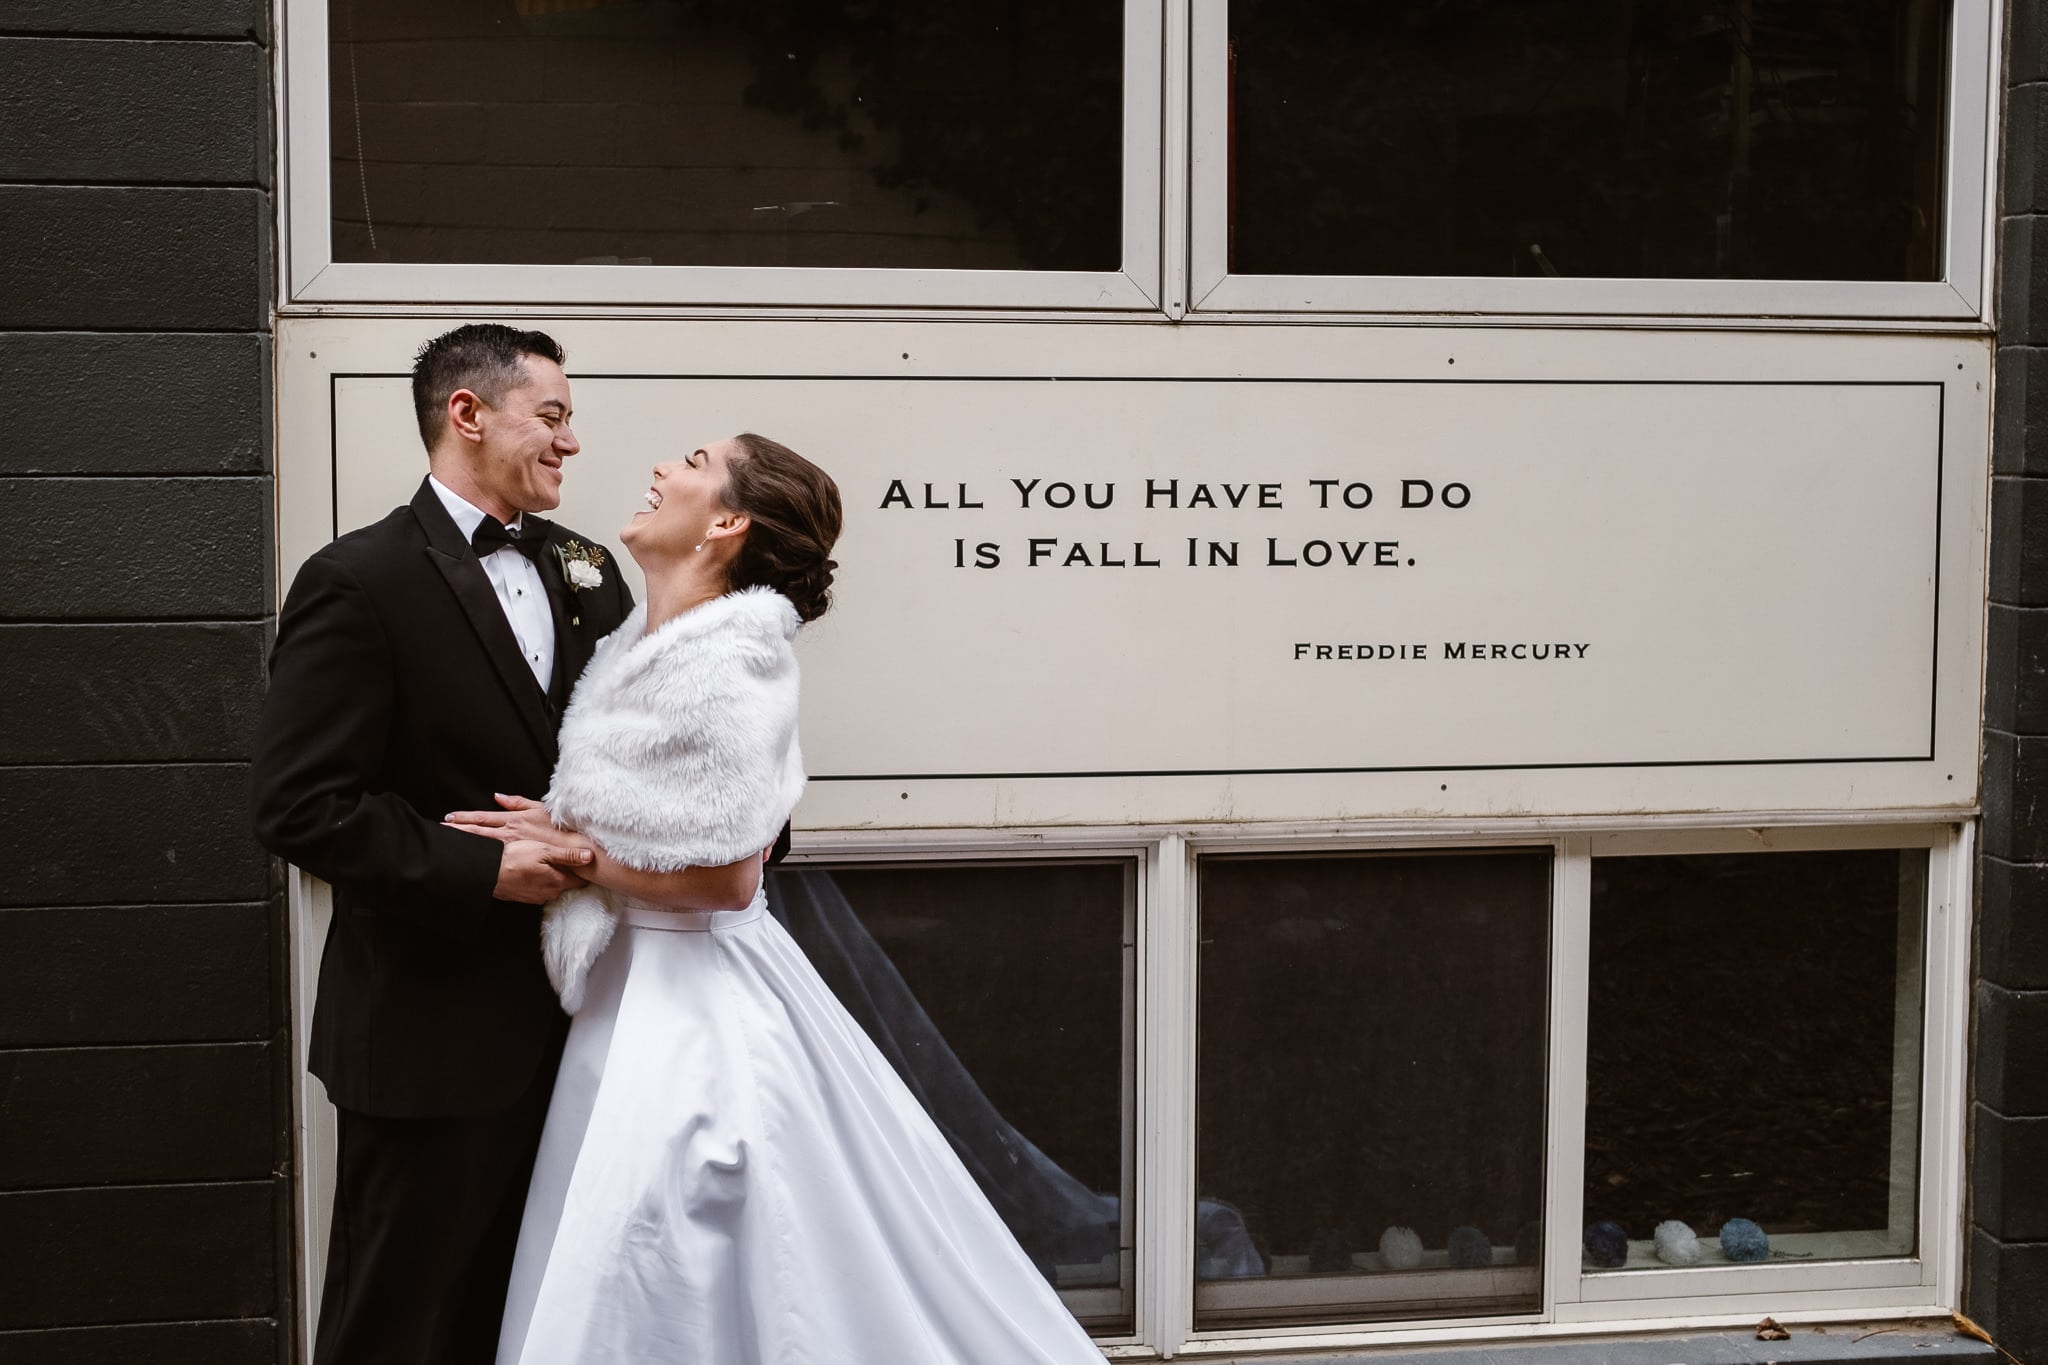 Rembrandt Yard wedding photographer, Boulder wedding photographer, Colorado Jewish wedding, bride and groom portrait with Freddie Mercury quote